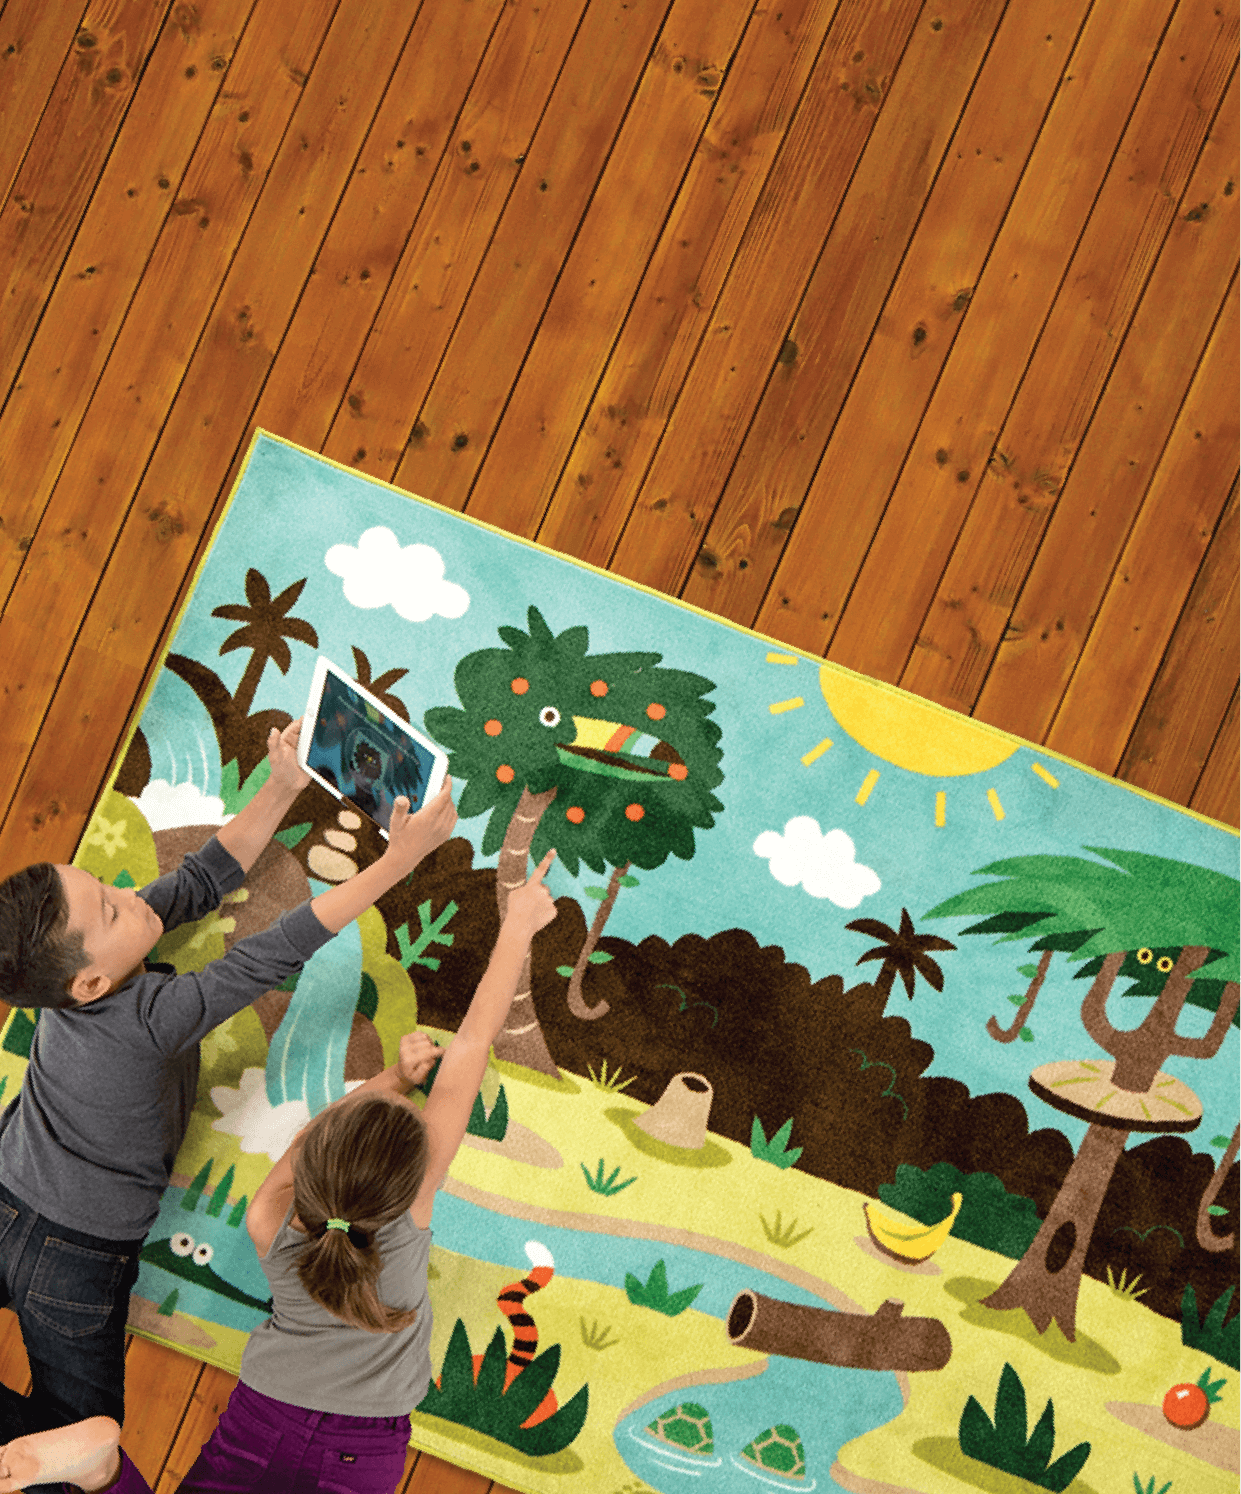 Storytime clipart rug time. Family story augmented reality